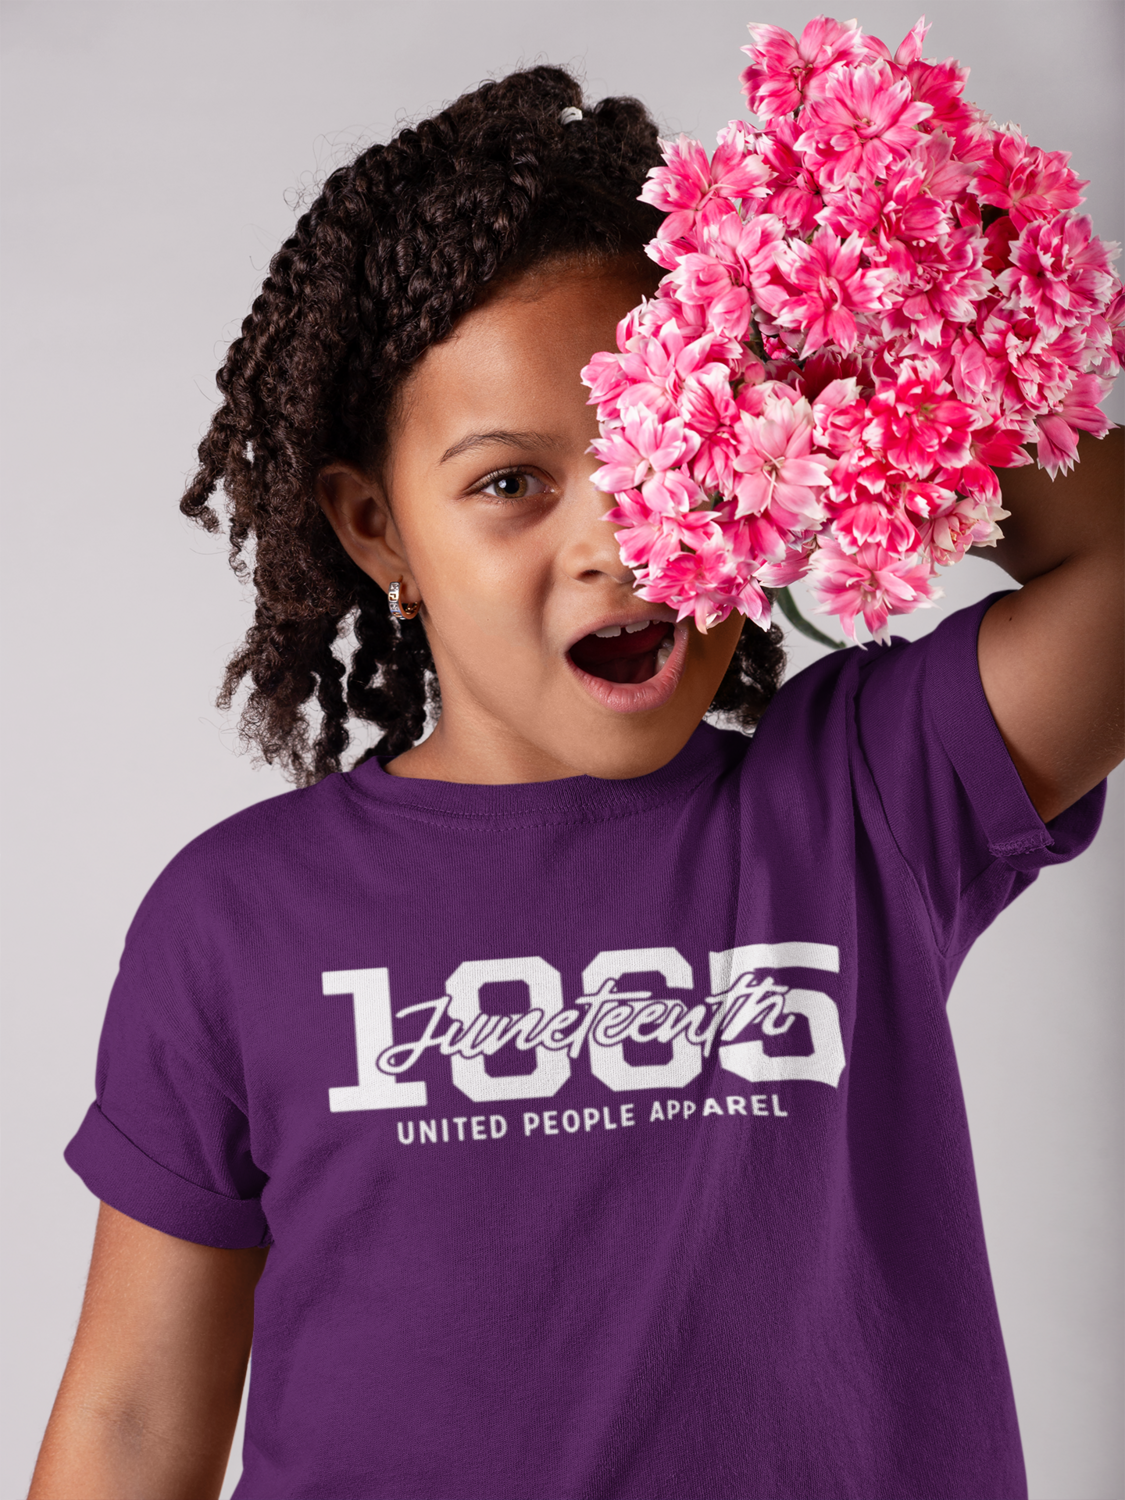 Juneteenth Youth Tee